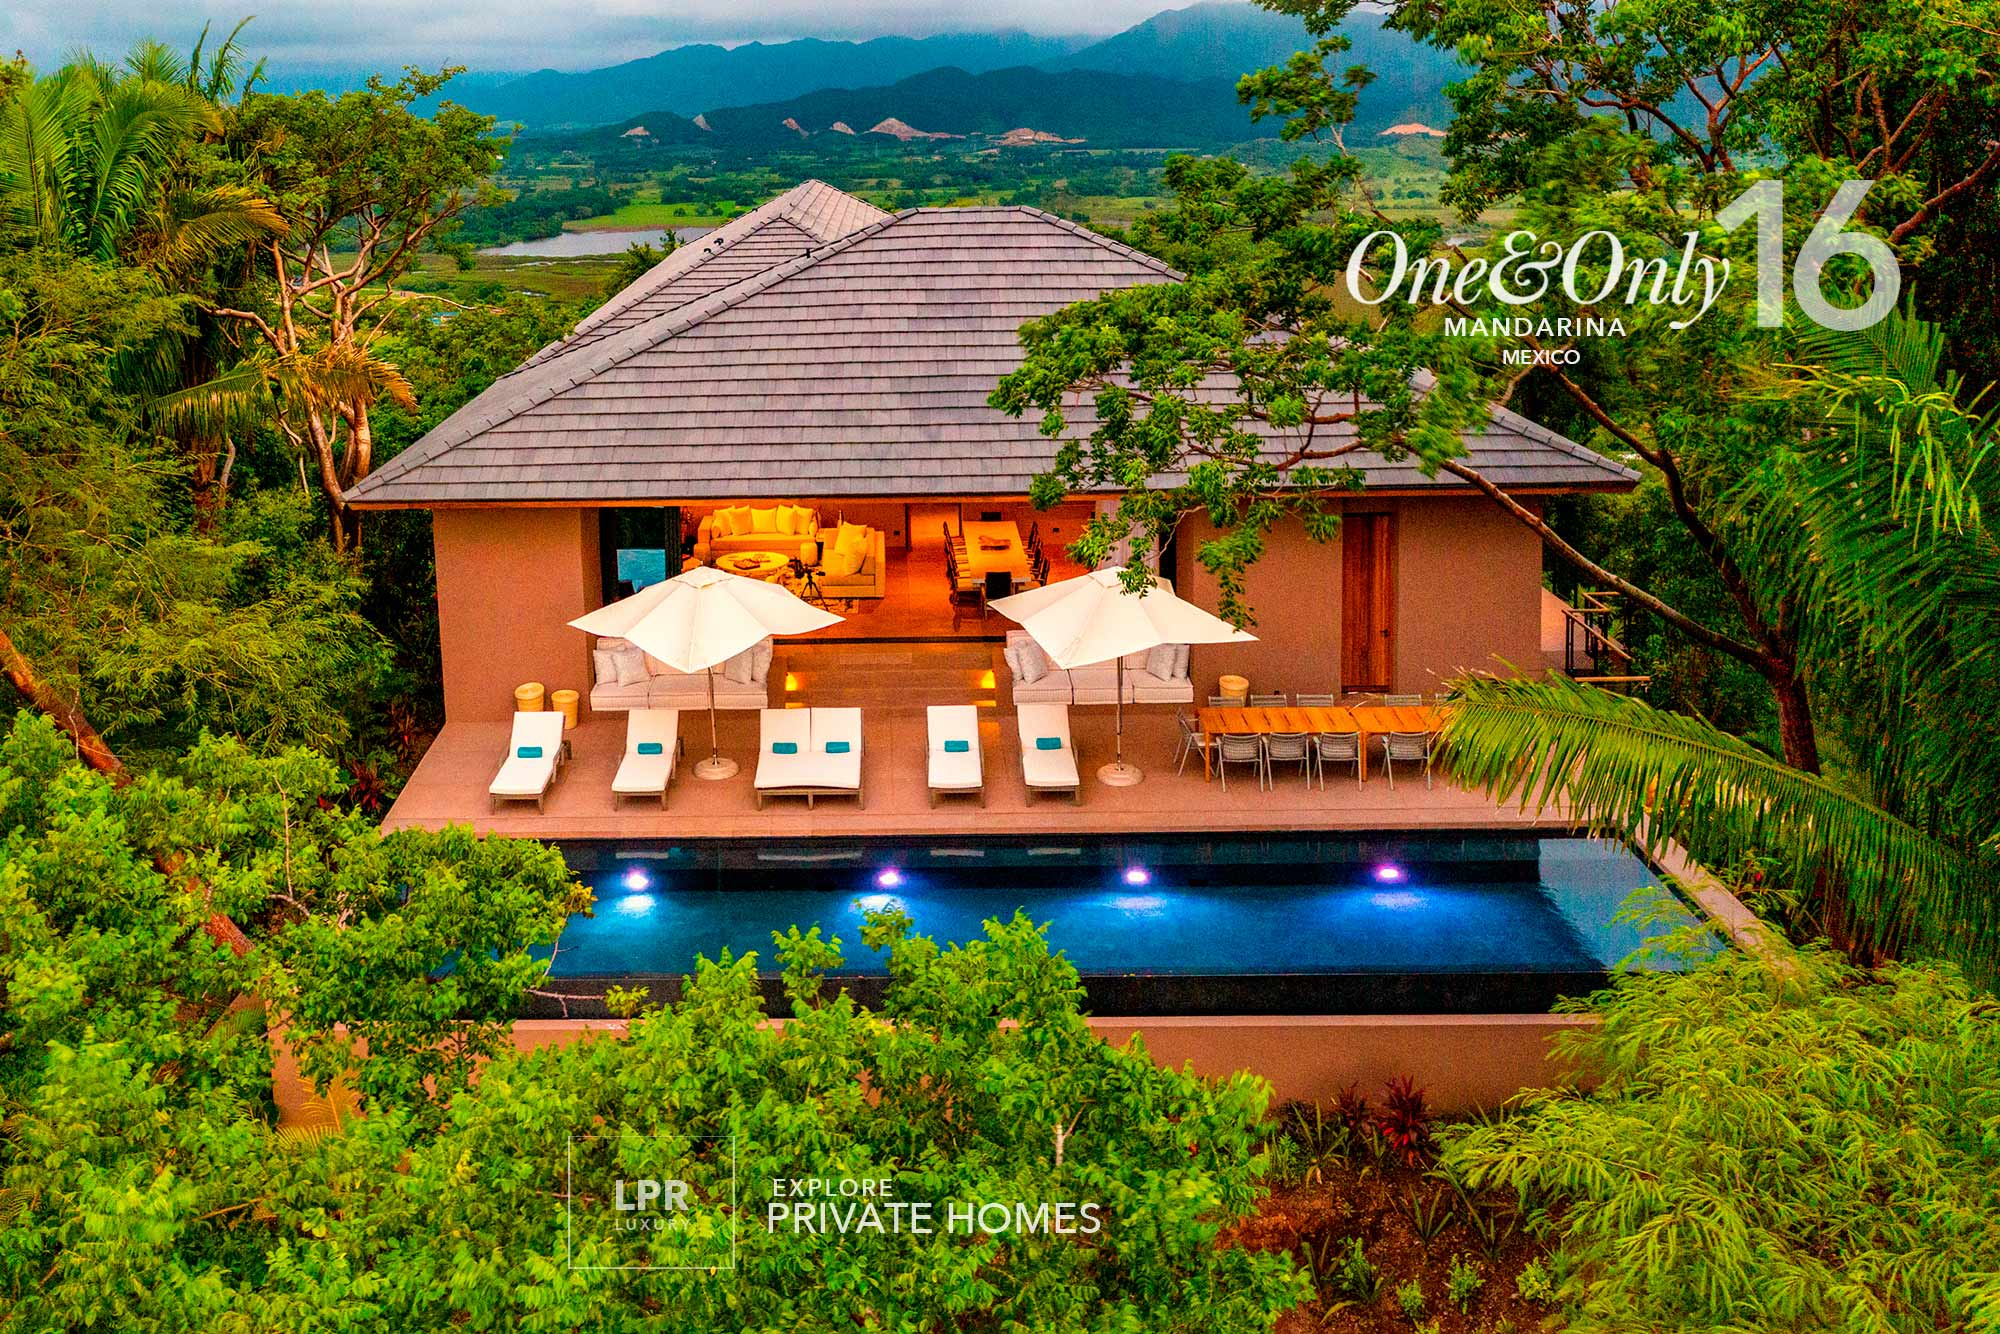 Explore The Private Homes at One&Only Mandarina, Riviera Nayarit, Mexico - LPR Luxury resort real estate in Mexico.